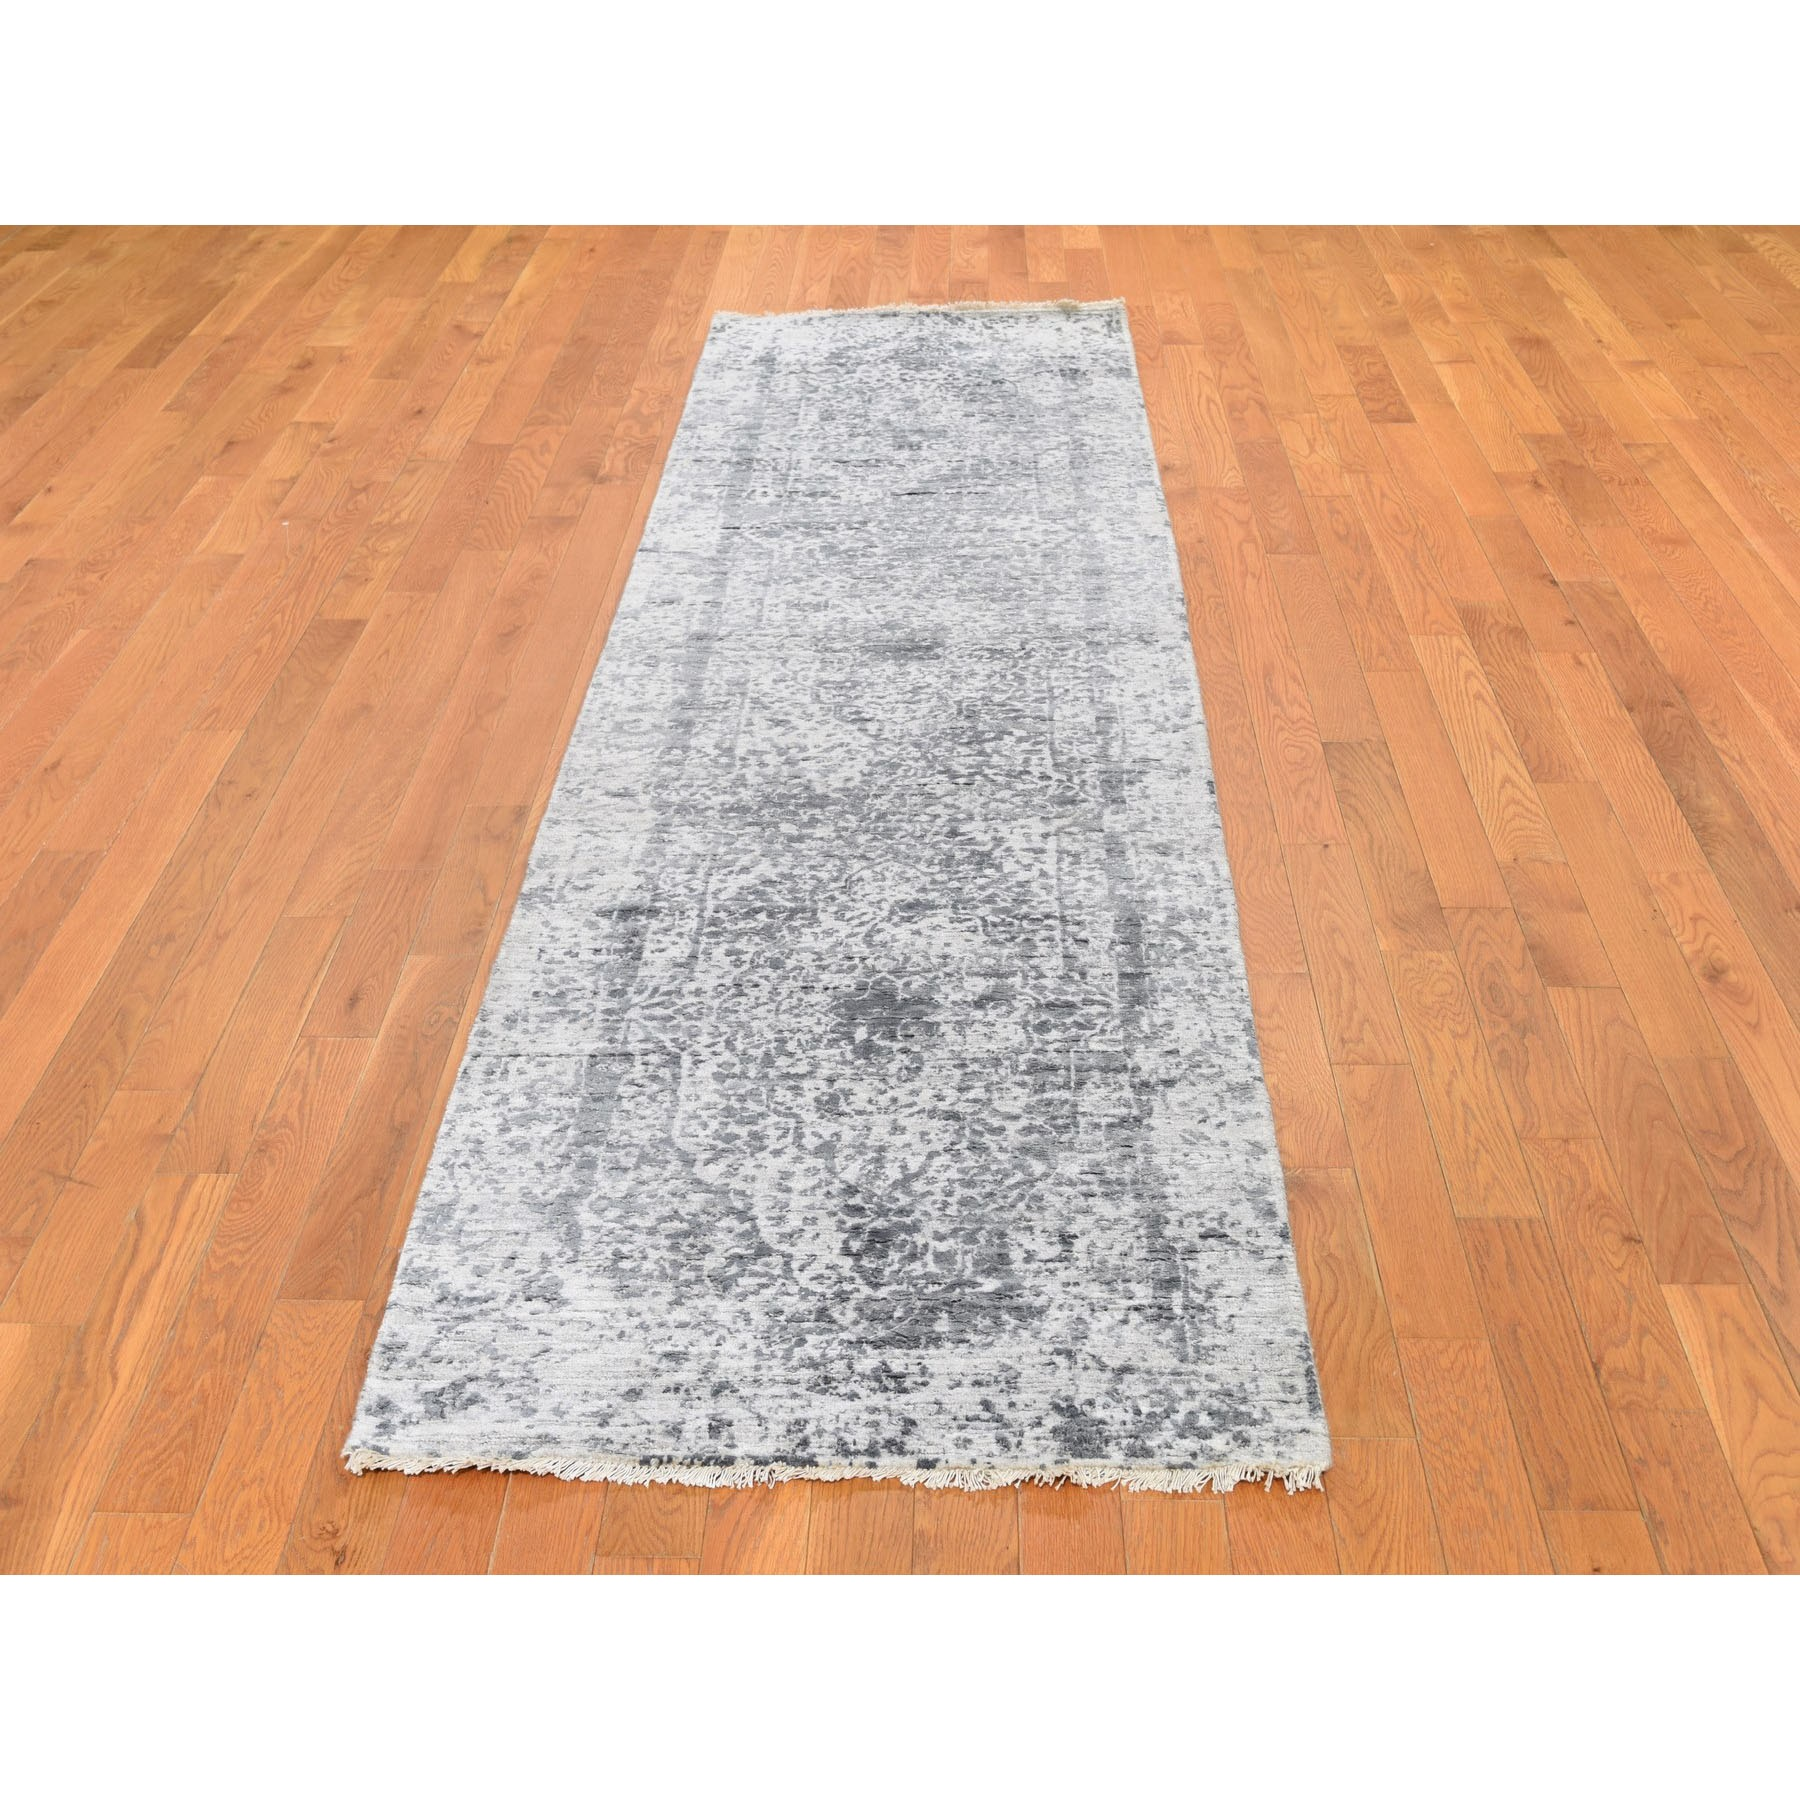 """2'8""""x10' Silver-Dark Gray Erased Persian Design Runner Wool and Pure Silk Hand Knotted Oriental Rug"""